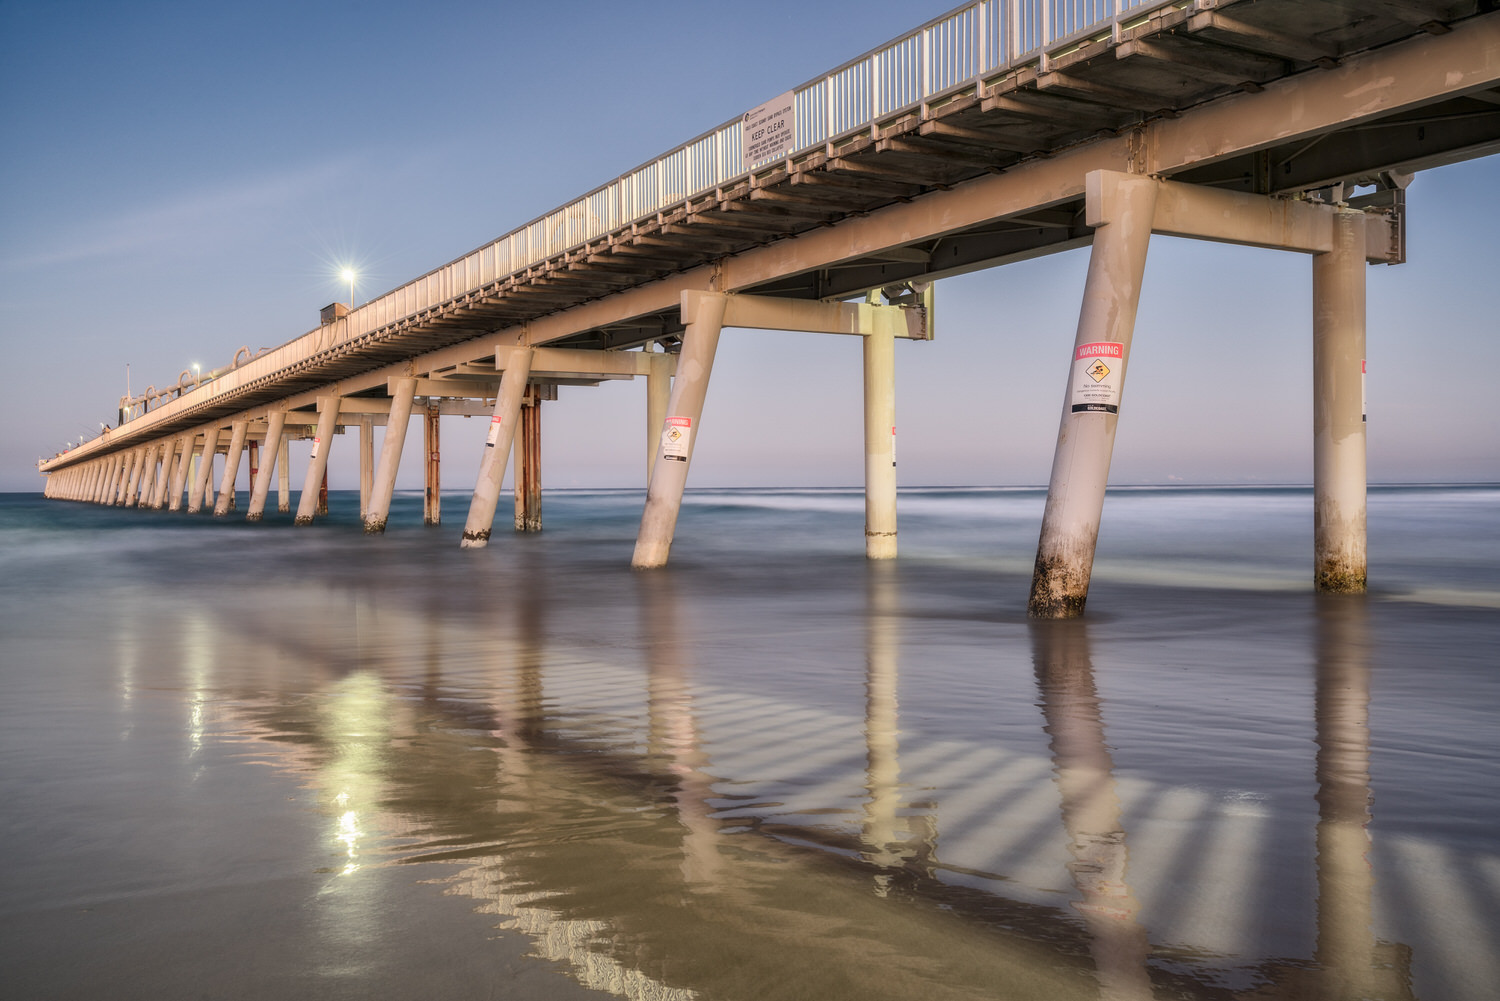 Lights on the  Sand Pumping Jetty  signal the transition from day to night at  The Spit  on Australia's  Gold Coast .